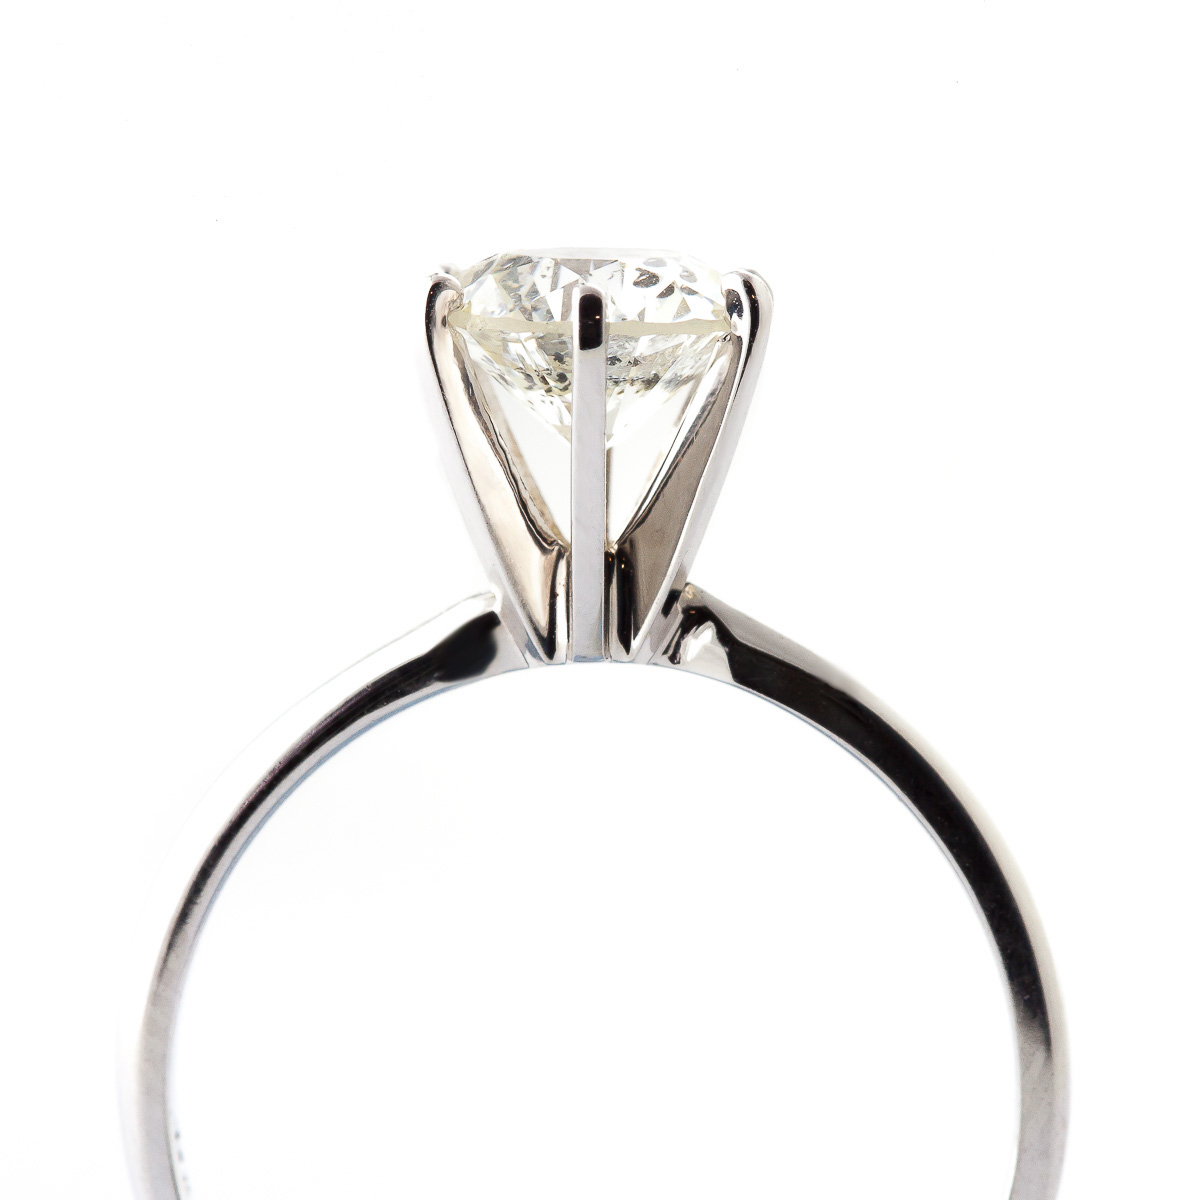 Round Brilliant Cut Diamond Solitaire Ring in 9ct White Gold